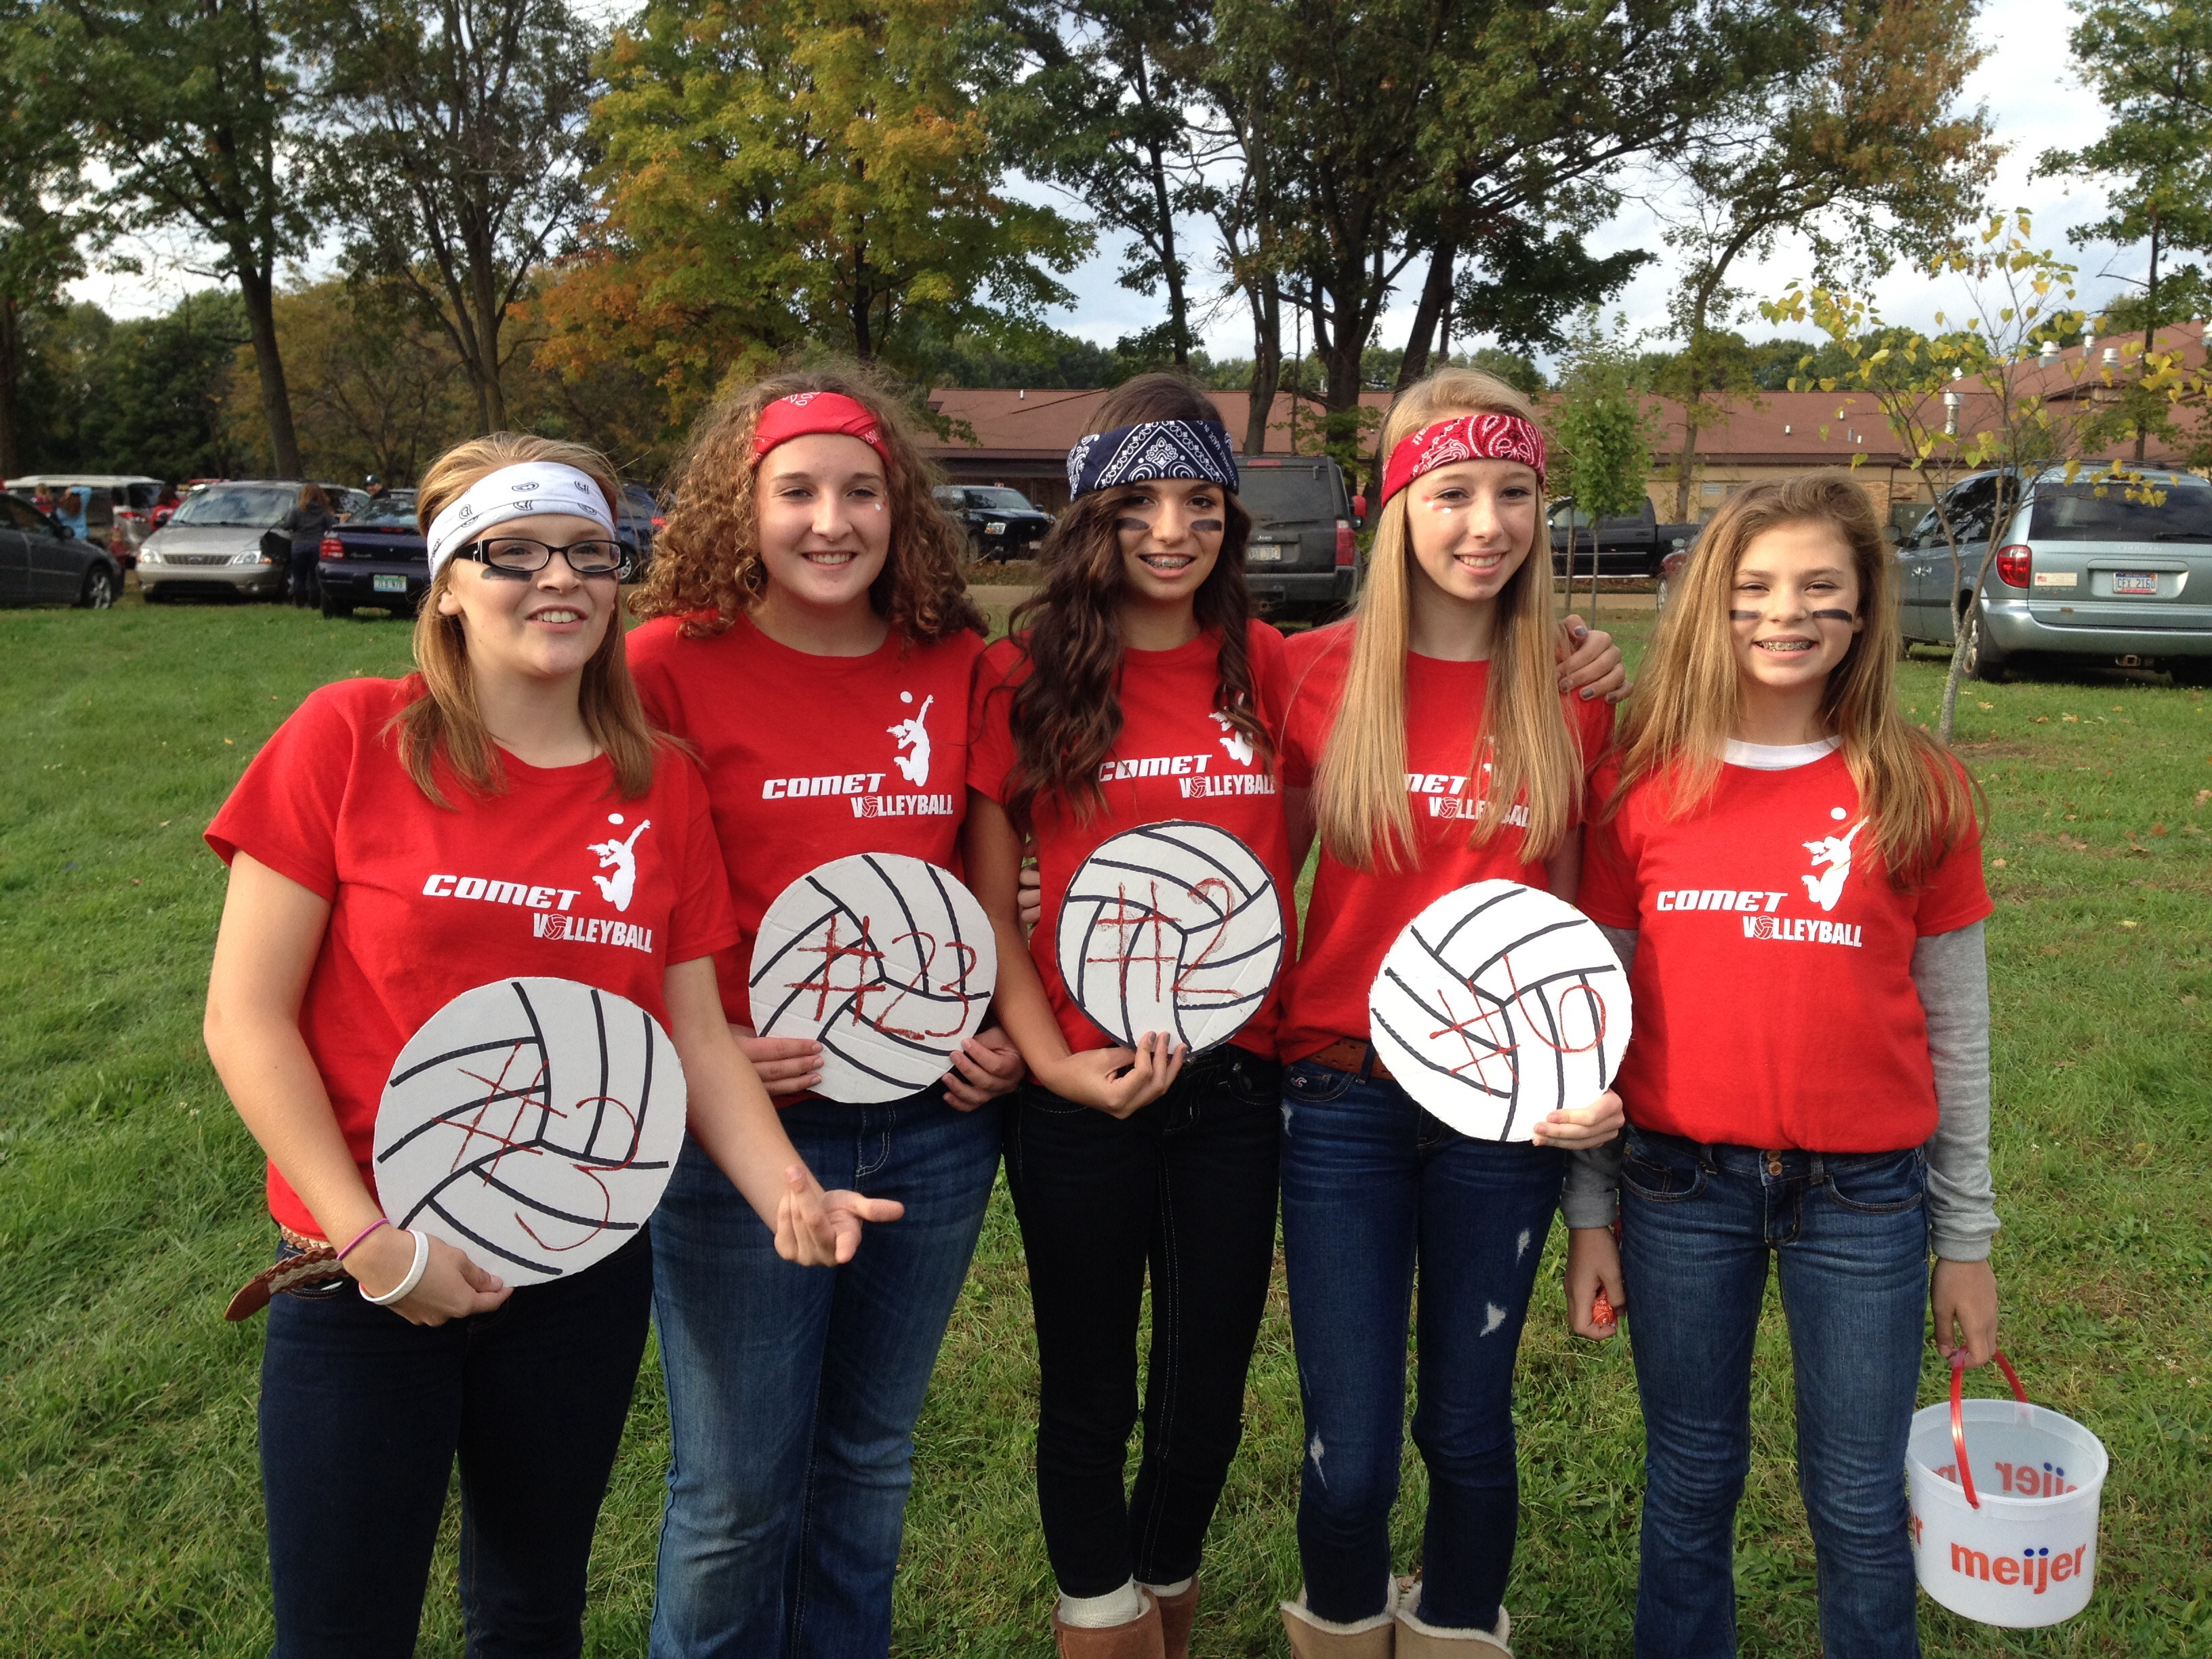 Custom T-Shirts for Hh Homecoming 8th Grade Volleyball - Shirt ... on